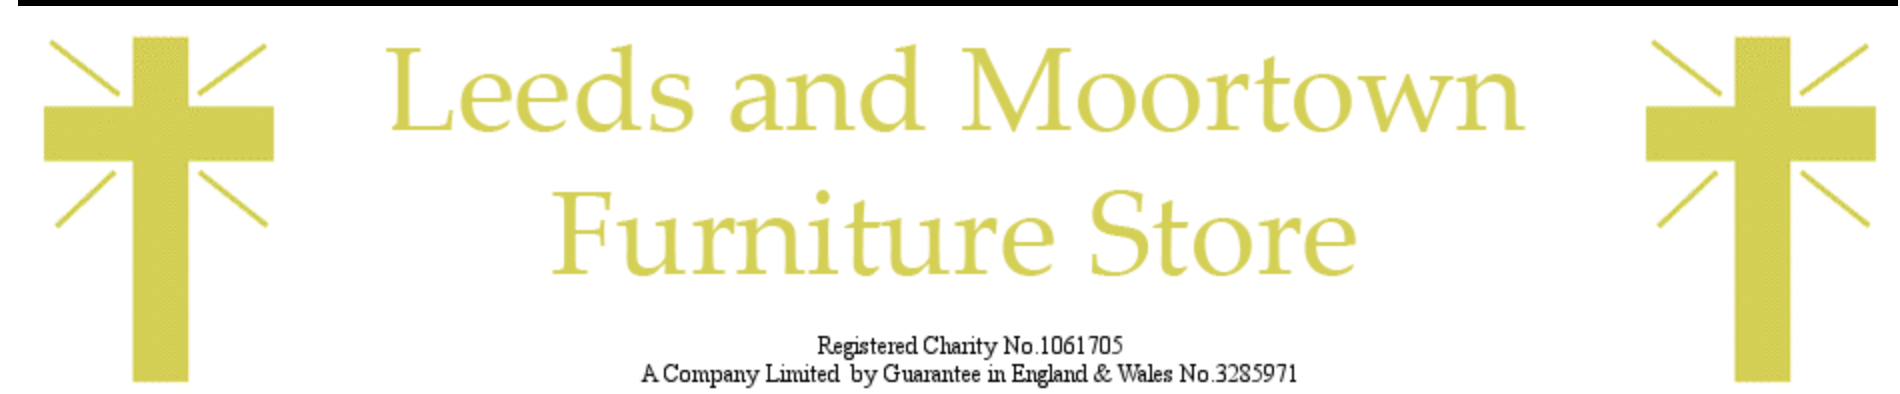 Leeds and Moortown Furniture Charity Shop